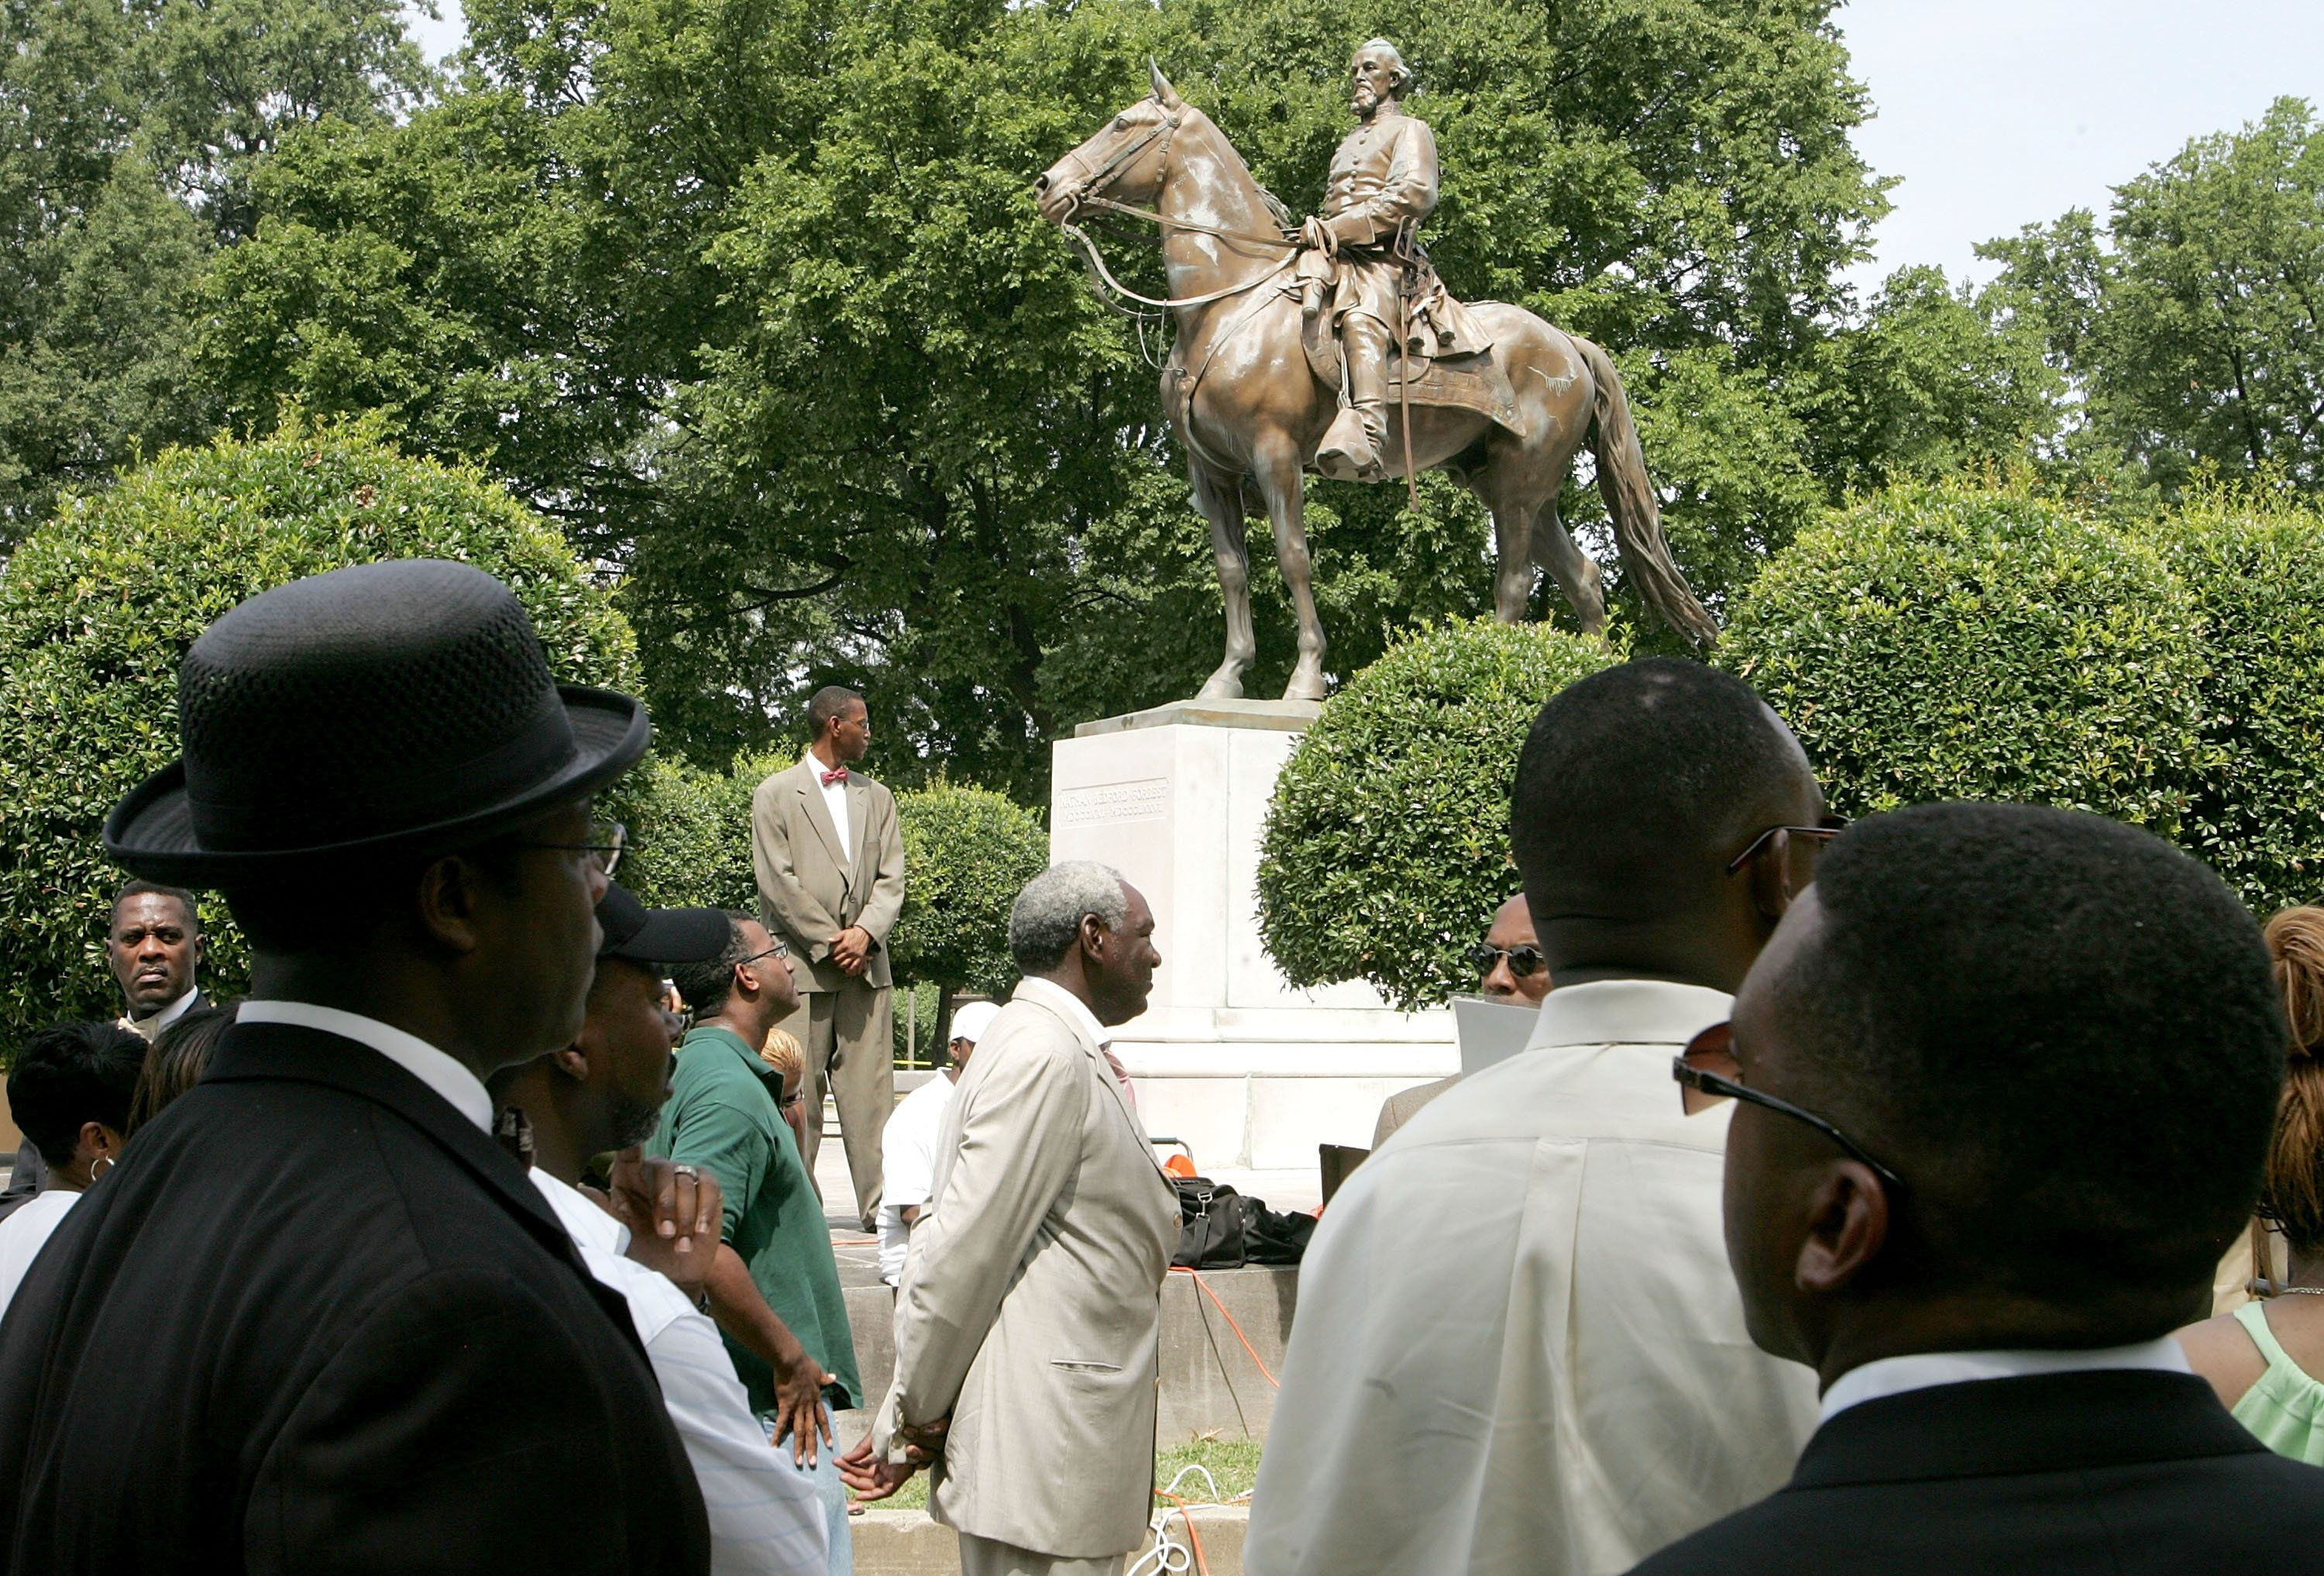 Back in 2005, protesters rallied against the name of Memphis' Nathan Bedford Forrest Park in front of a statue of t